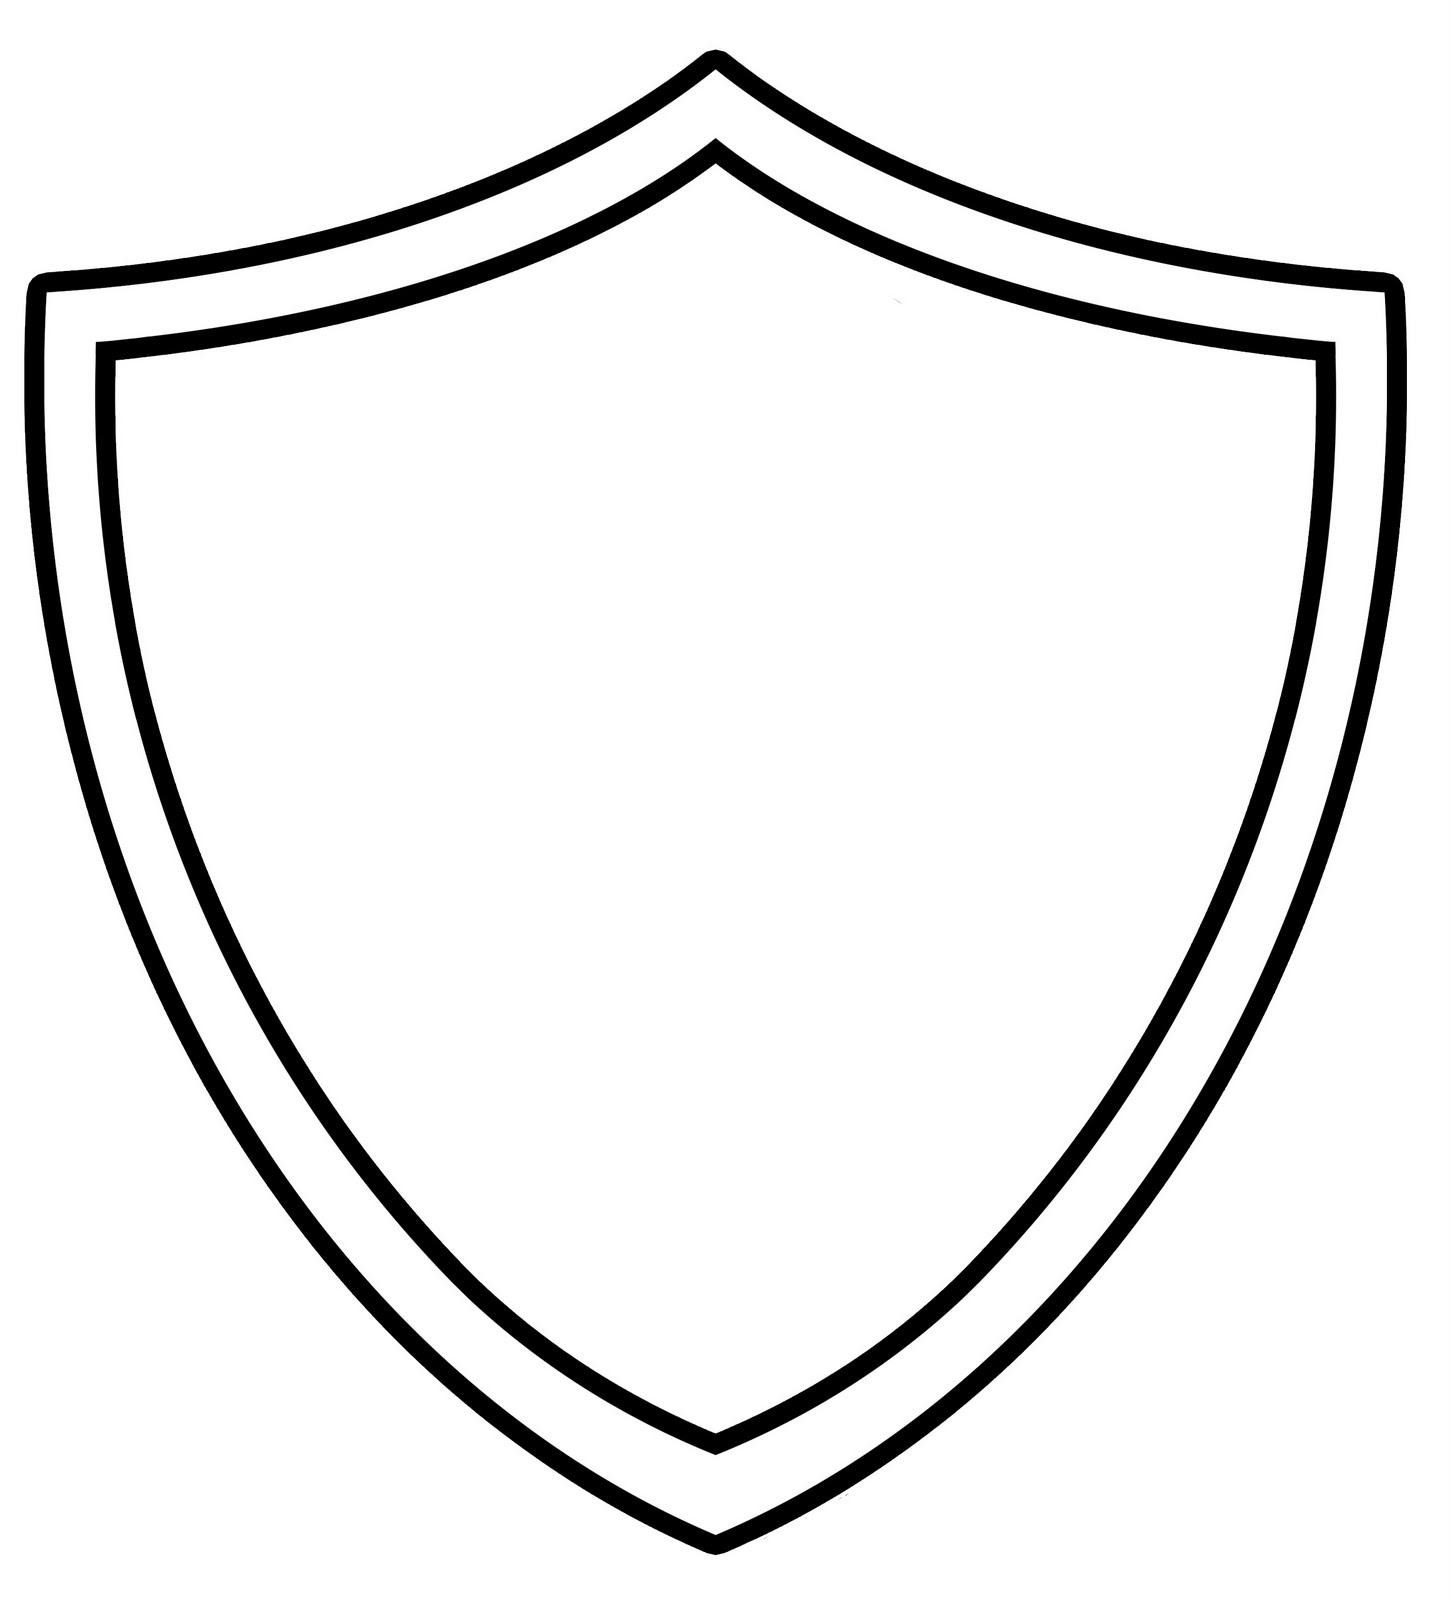 shield coloring page coloring sheet of a blank sheild clipart best shield page coloring